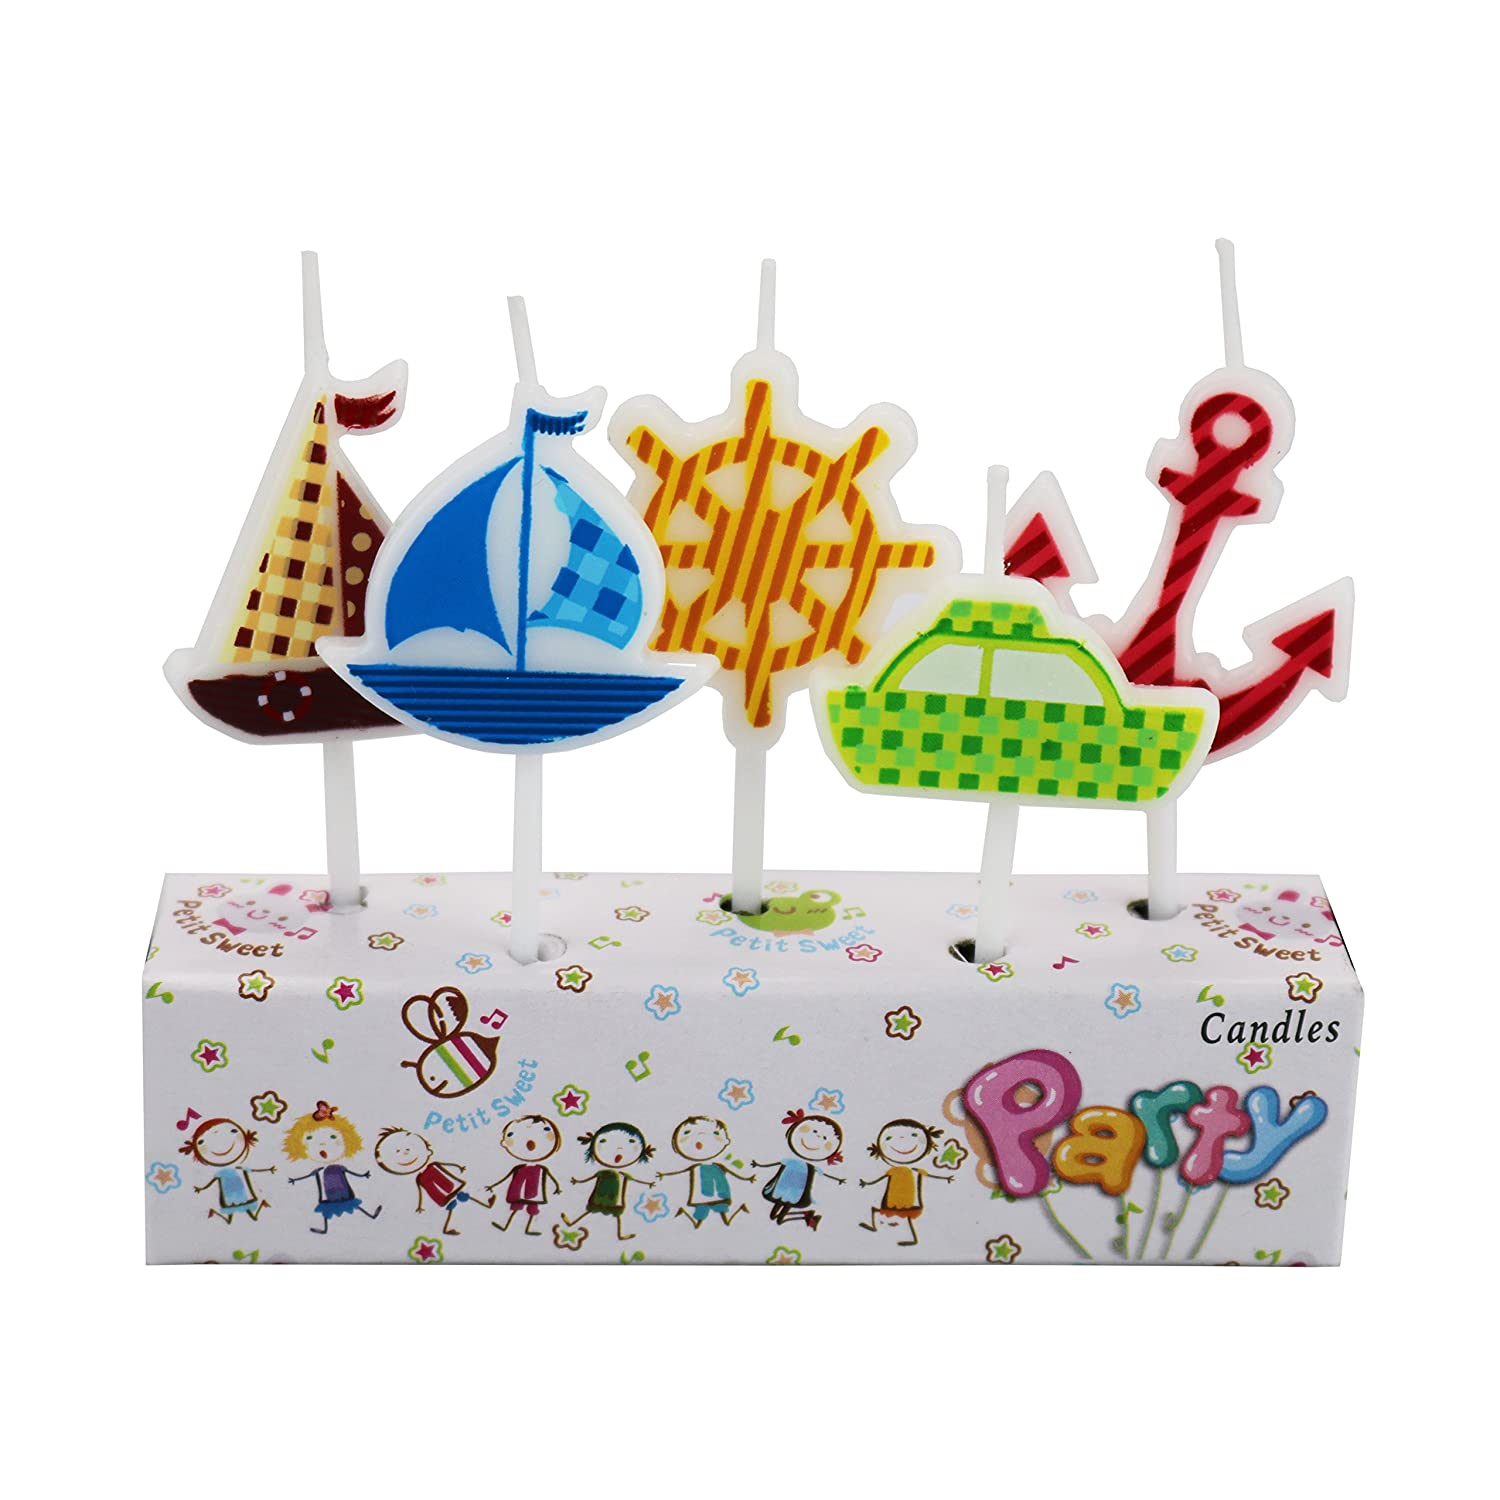 Mermaid Hinsper Party Candles for Birthday Party Special Days Festivals